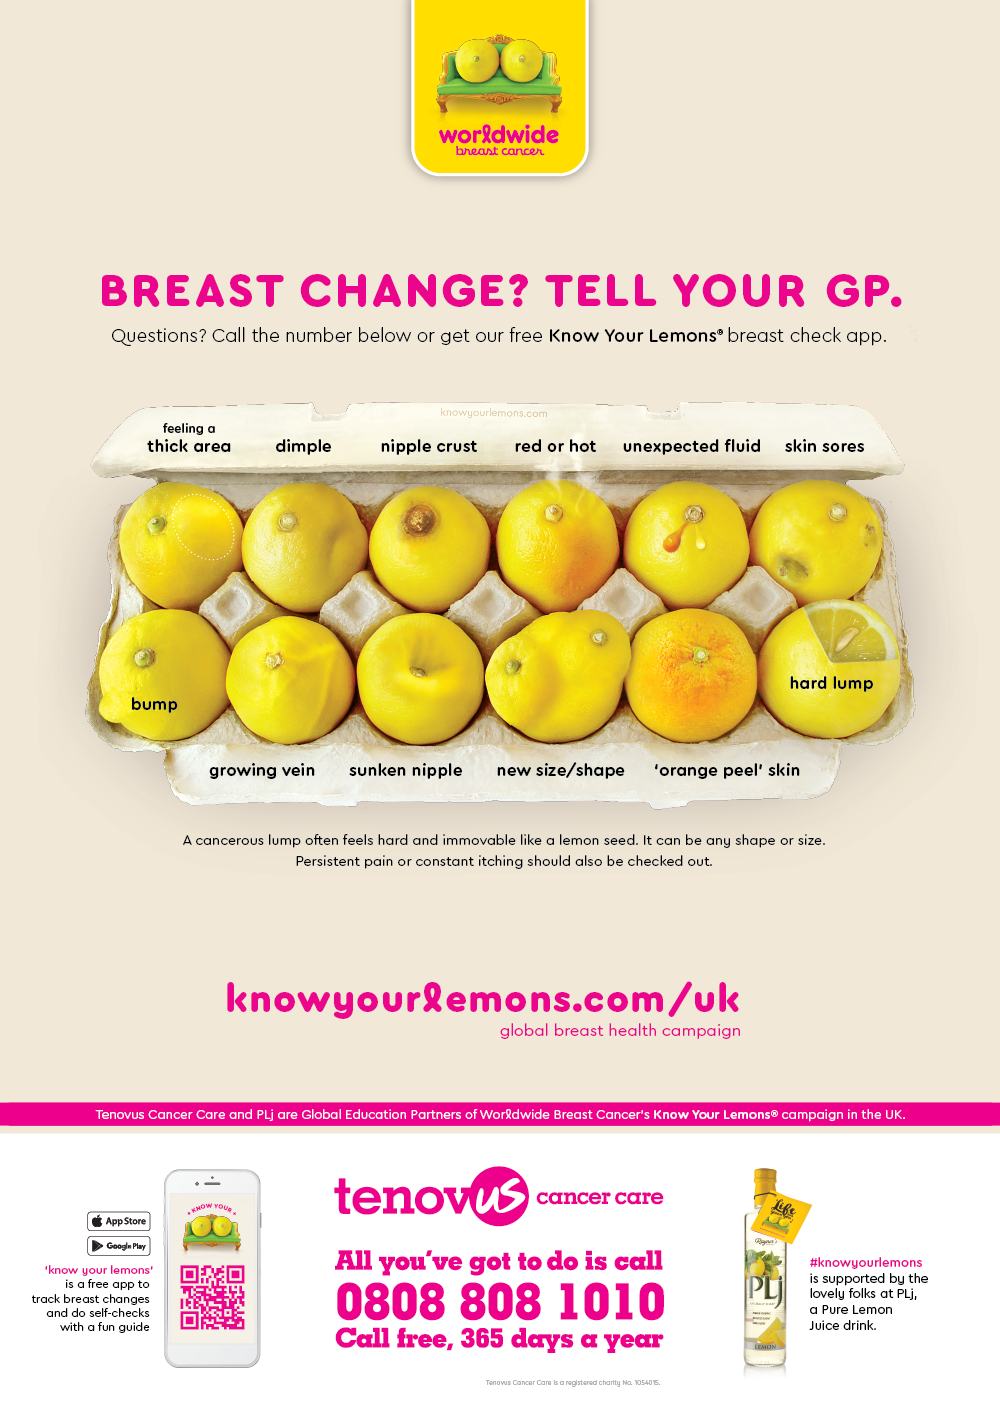 Creating awareness - Help spread the word by distributing our PLj sponsored posters in GP surgeries up and down the country.